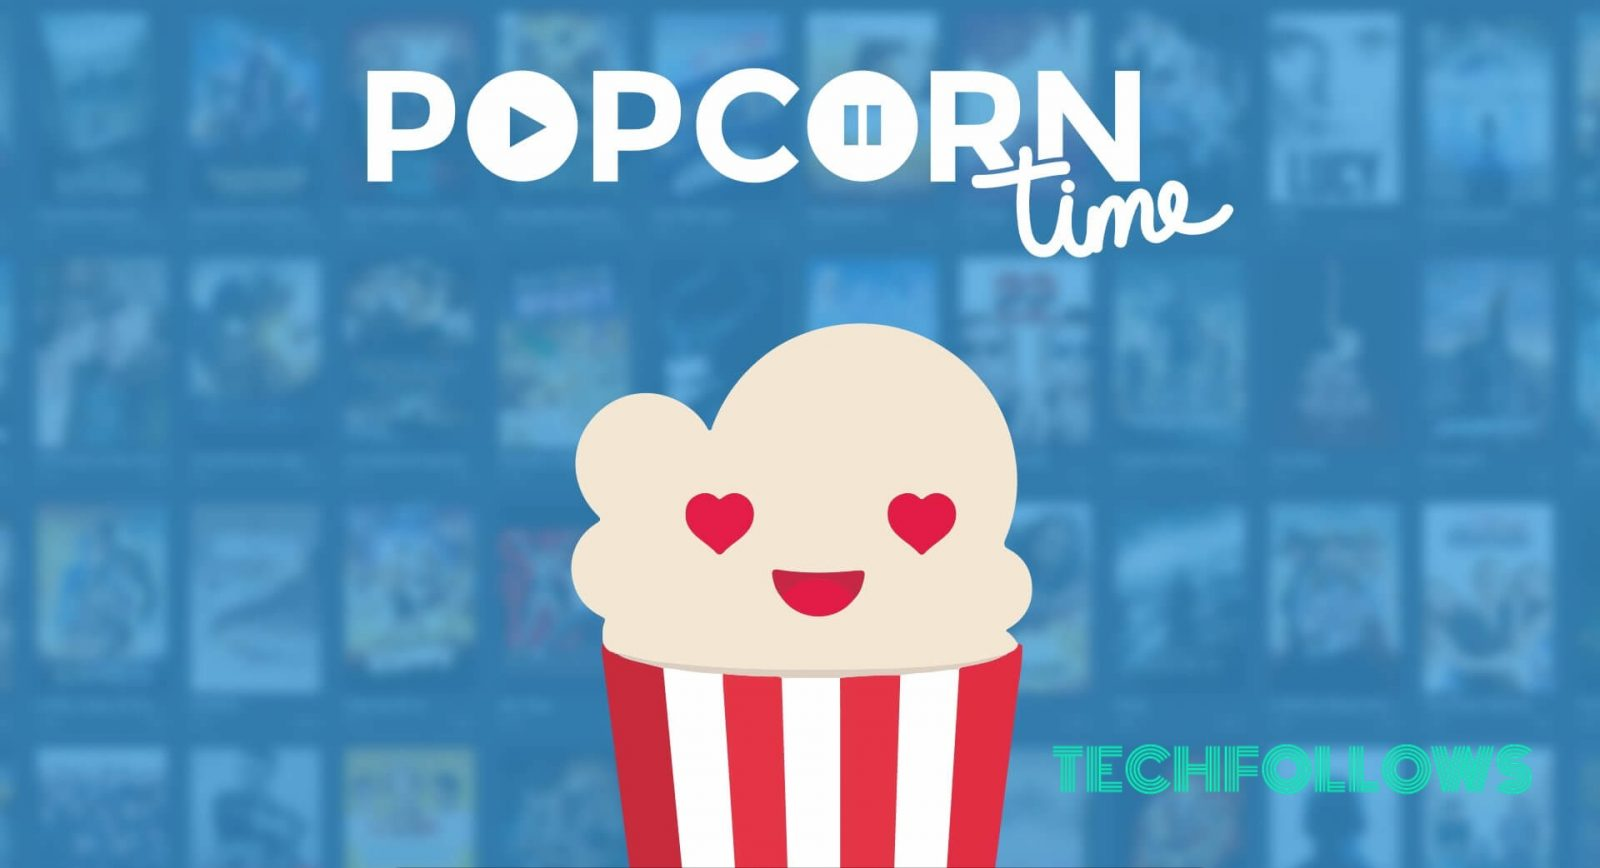 What is Popcorn Time